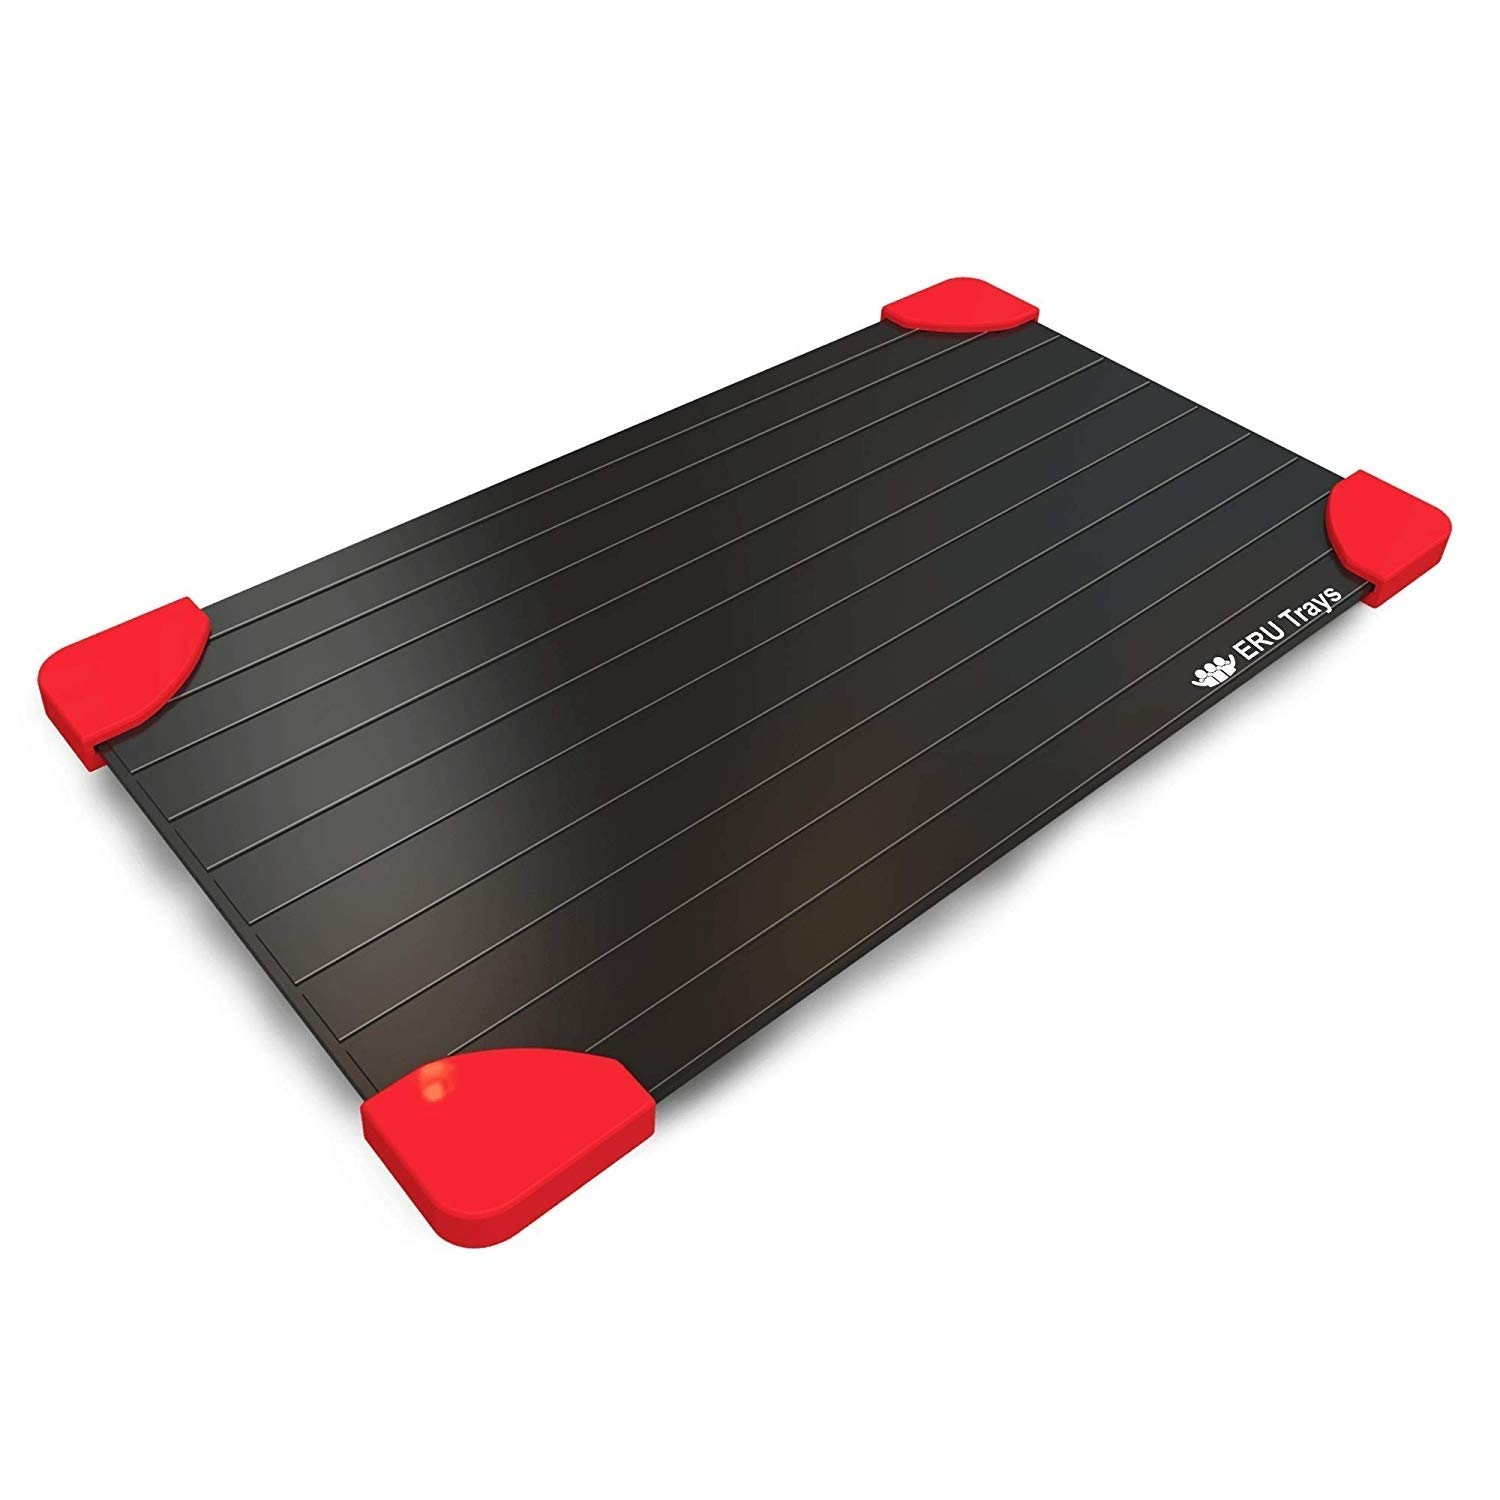 ERU erutray Largest Size 3 mm Magic Fast Thawing Plate for Frozen Foods-No Battery, No Microwav Defrosting Tray, 8x14 inch, Black